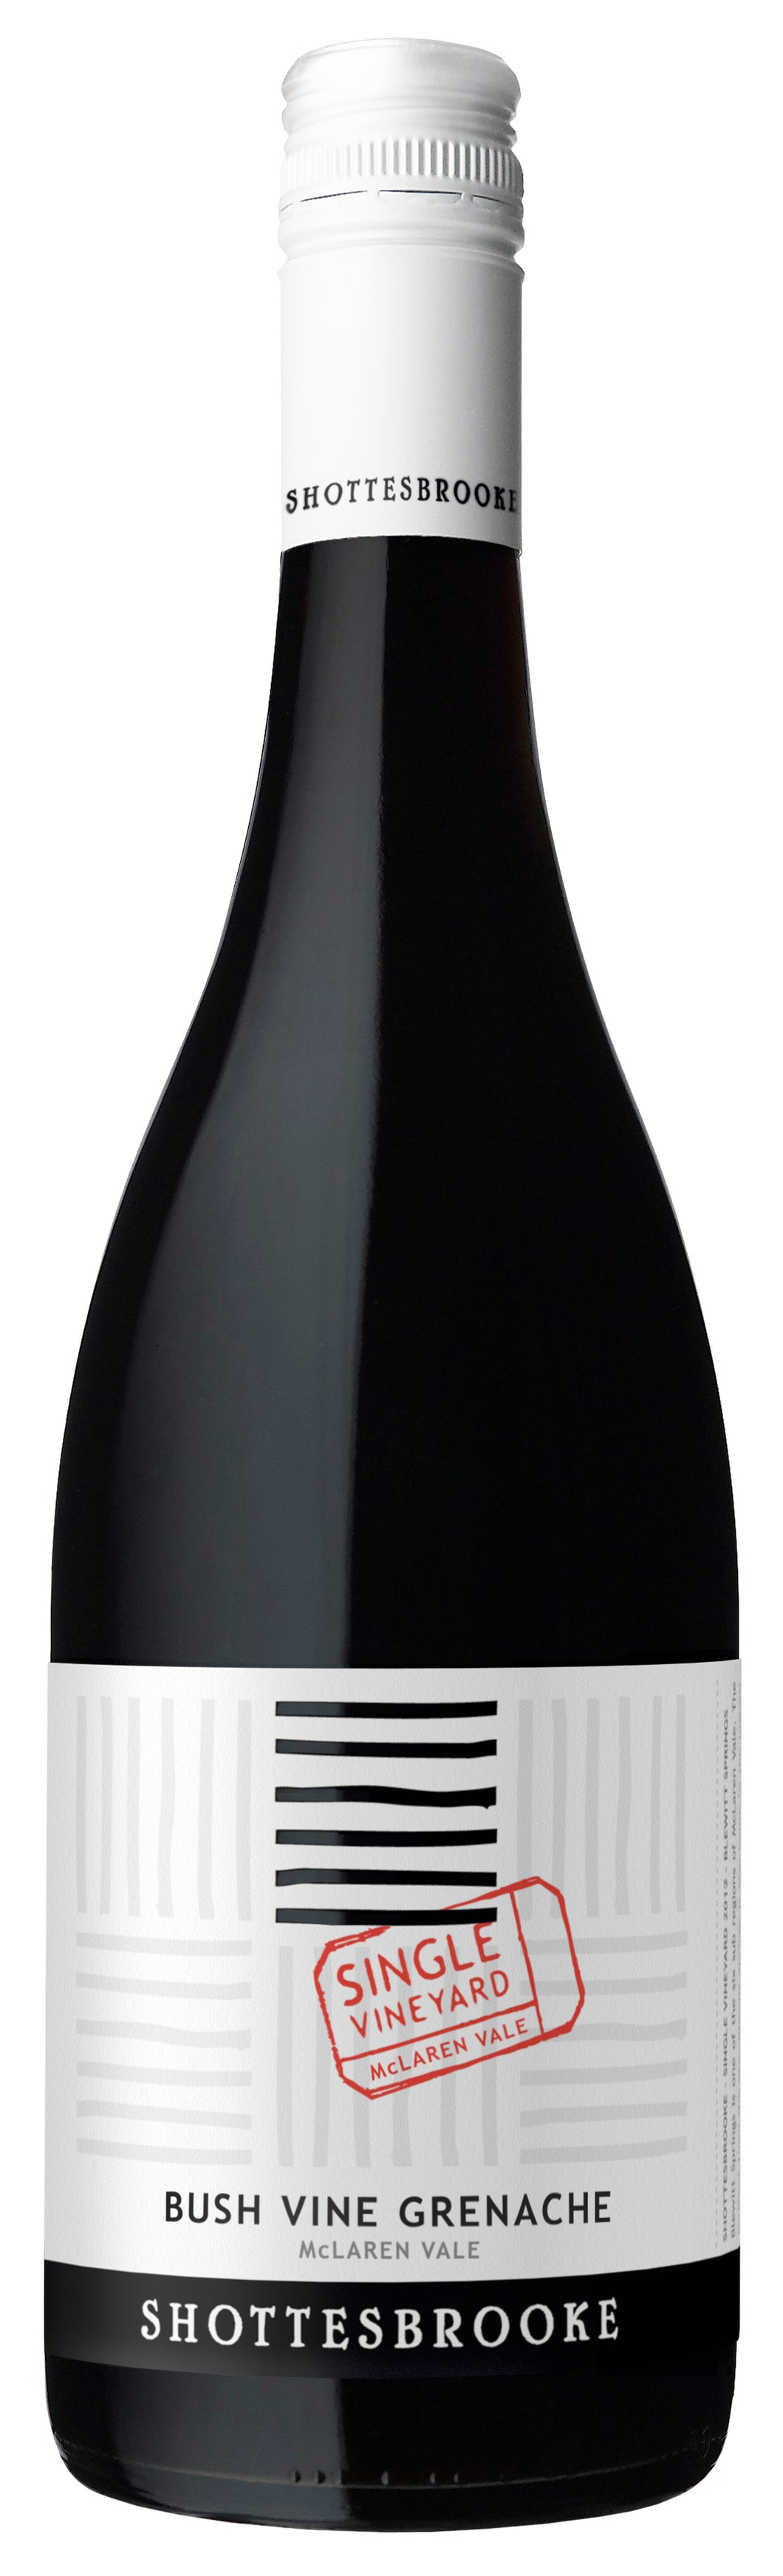 Shottesbrooke Single Vineyard Bush Vine Grenache 2015